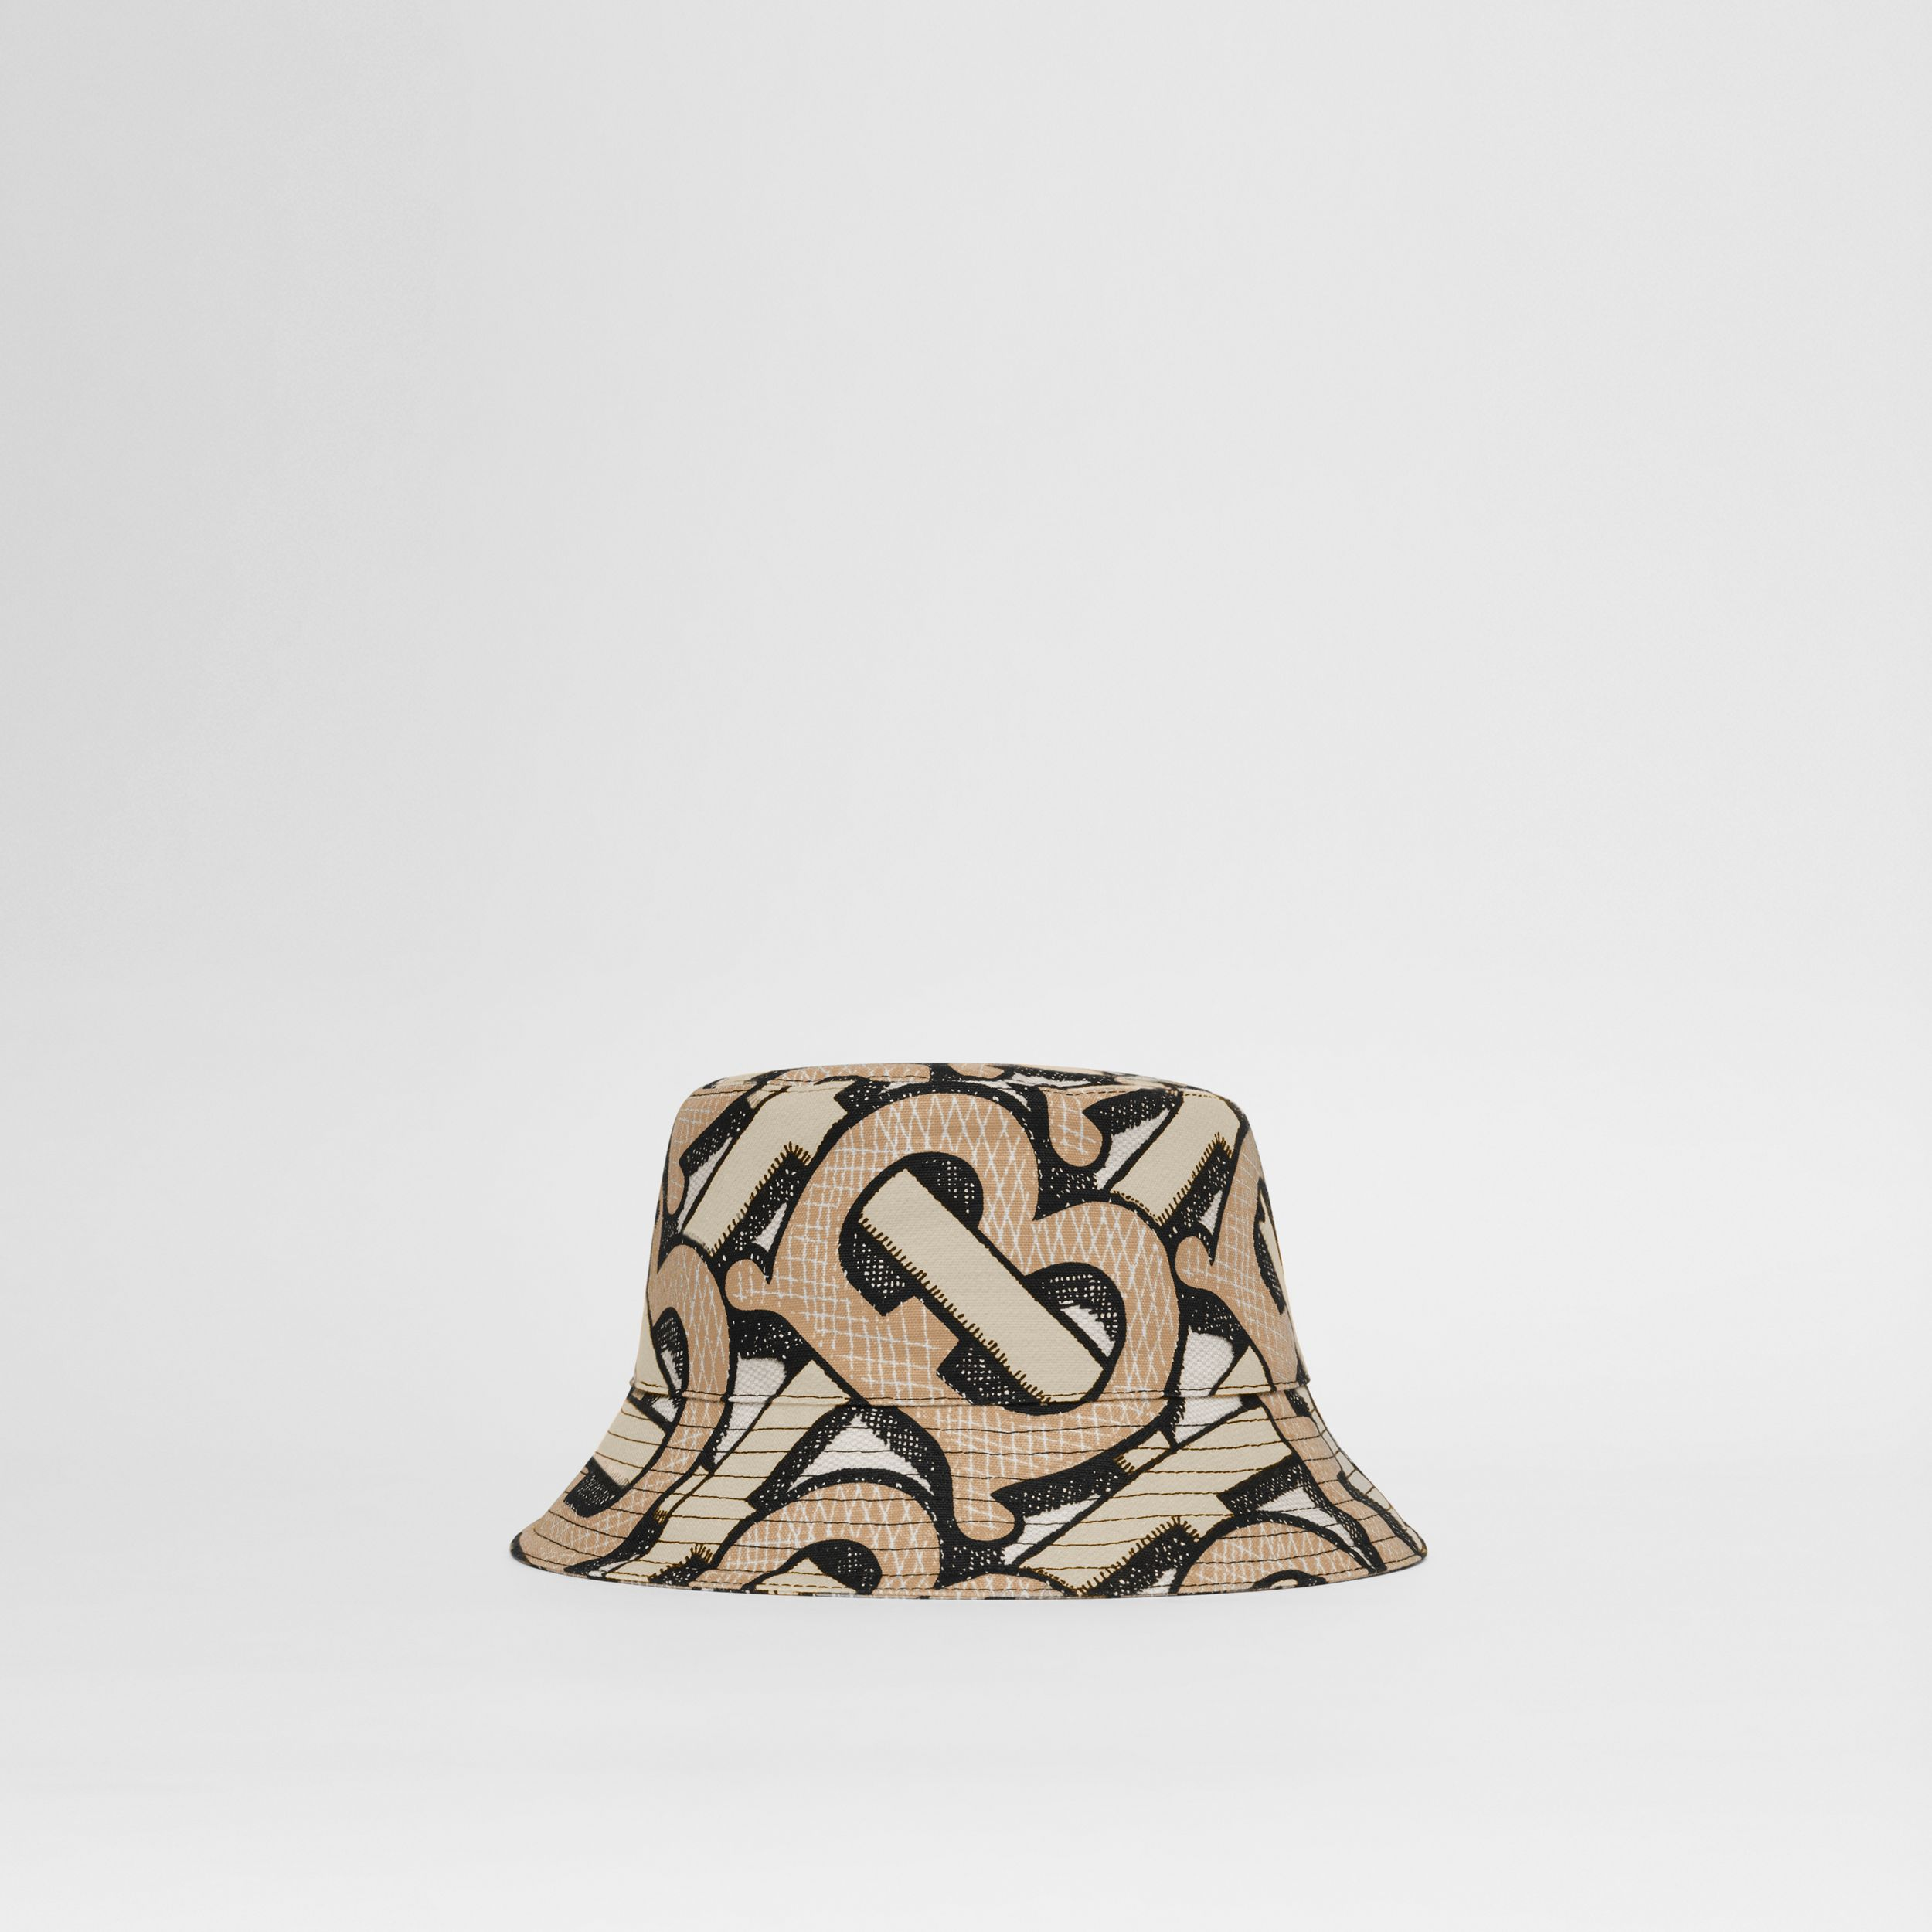 Monogram Print Cotton Canvas Bucket Hat in Dark Beige | Burberry United States - 1